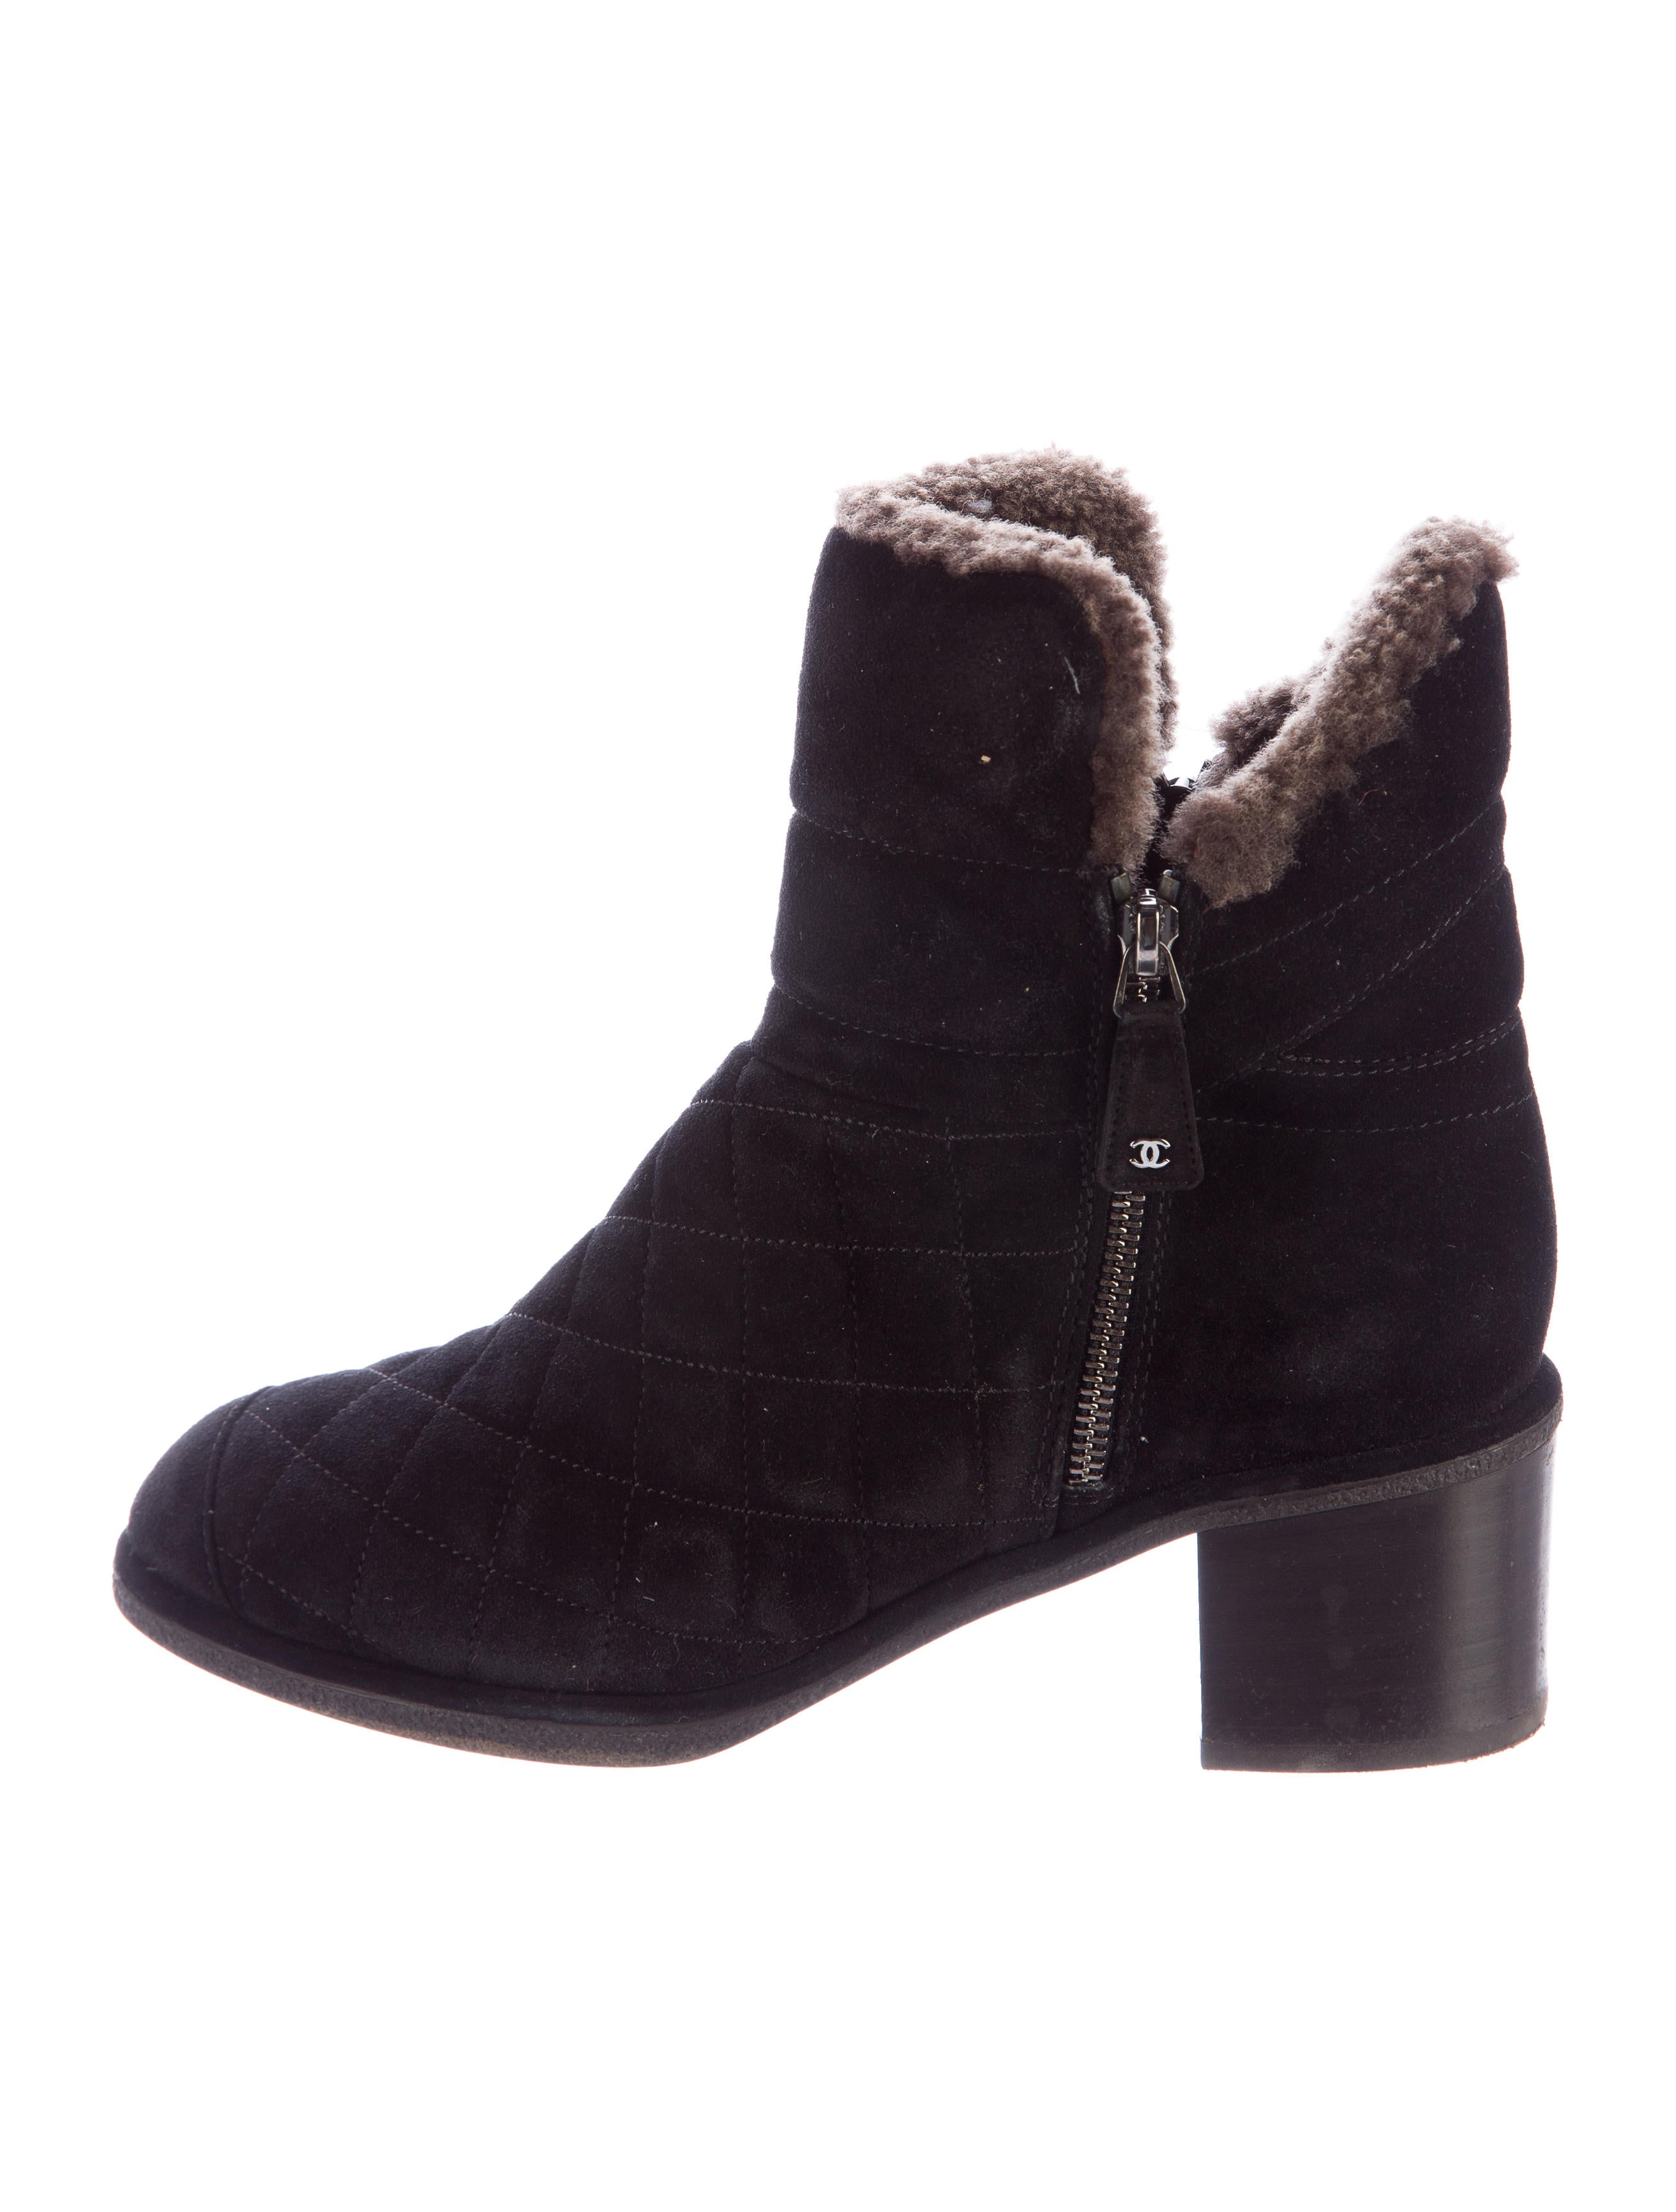 chanel quilted suede ankle boots shoes cha165658 the